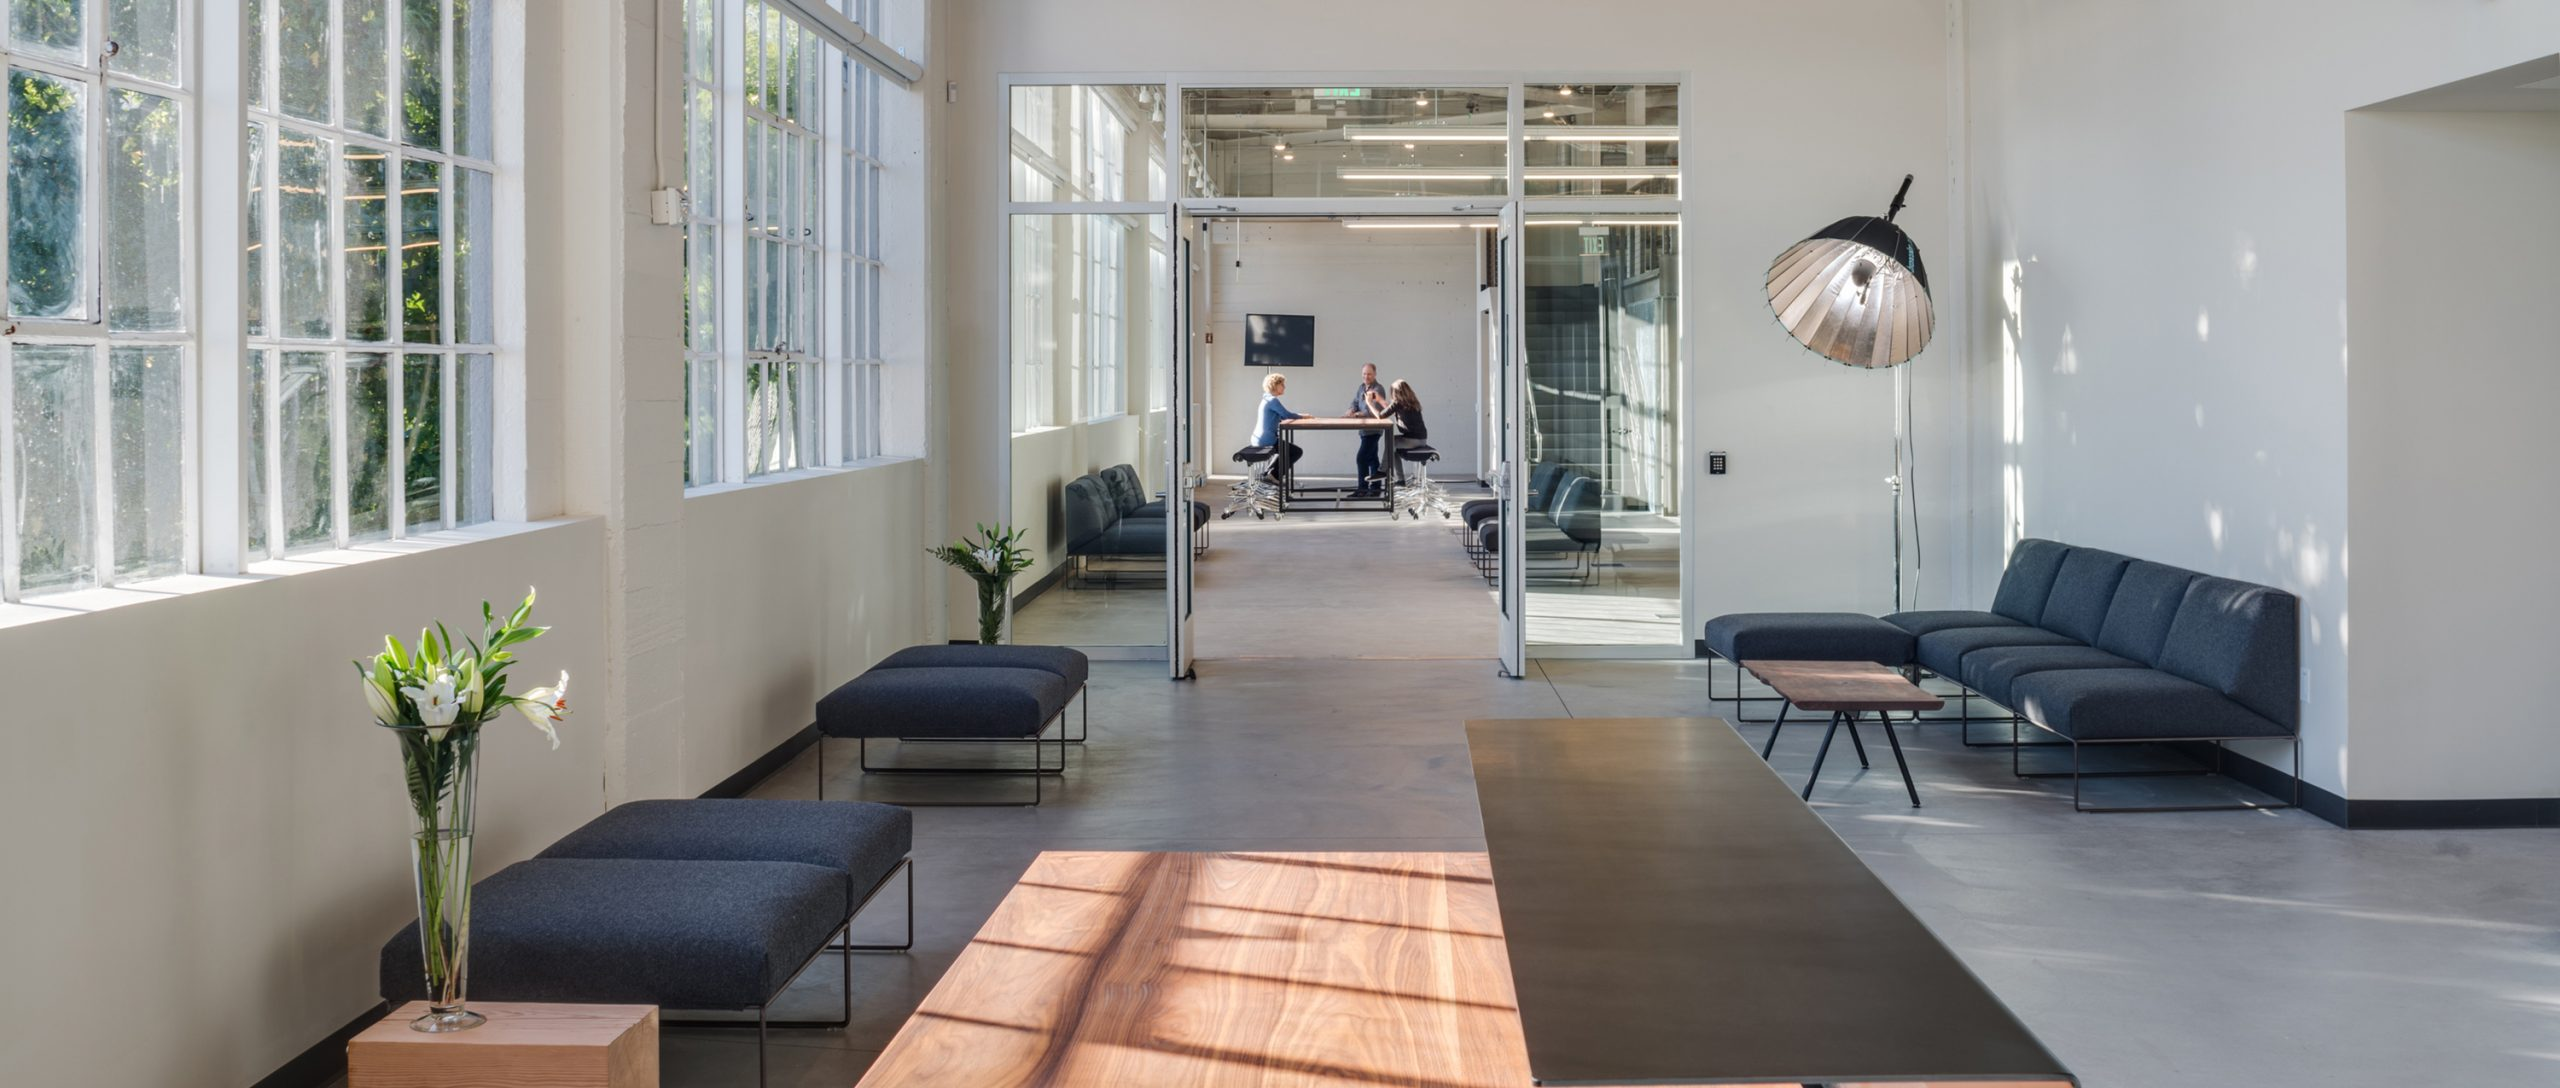 San Francisco Tech Company Interiors Shine